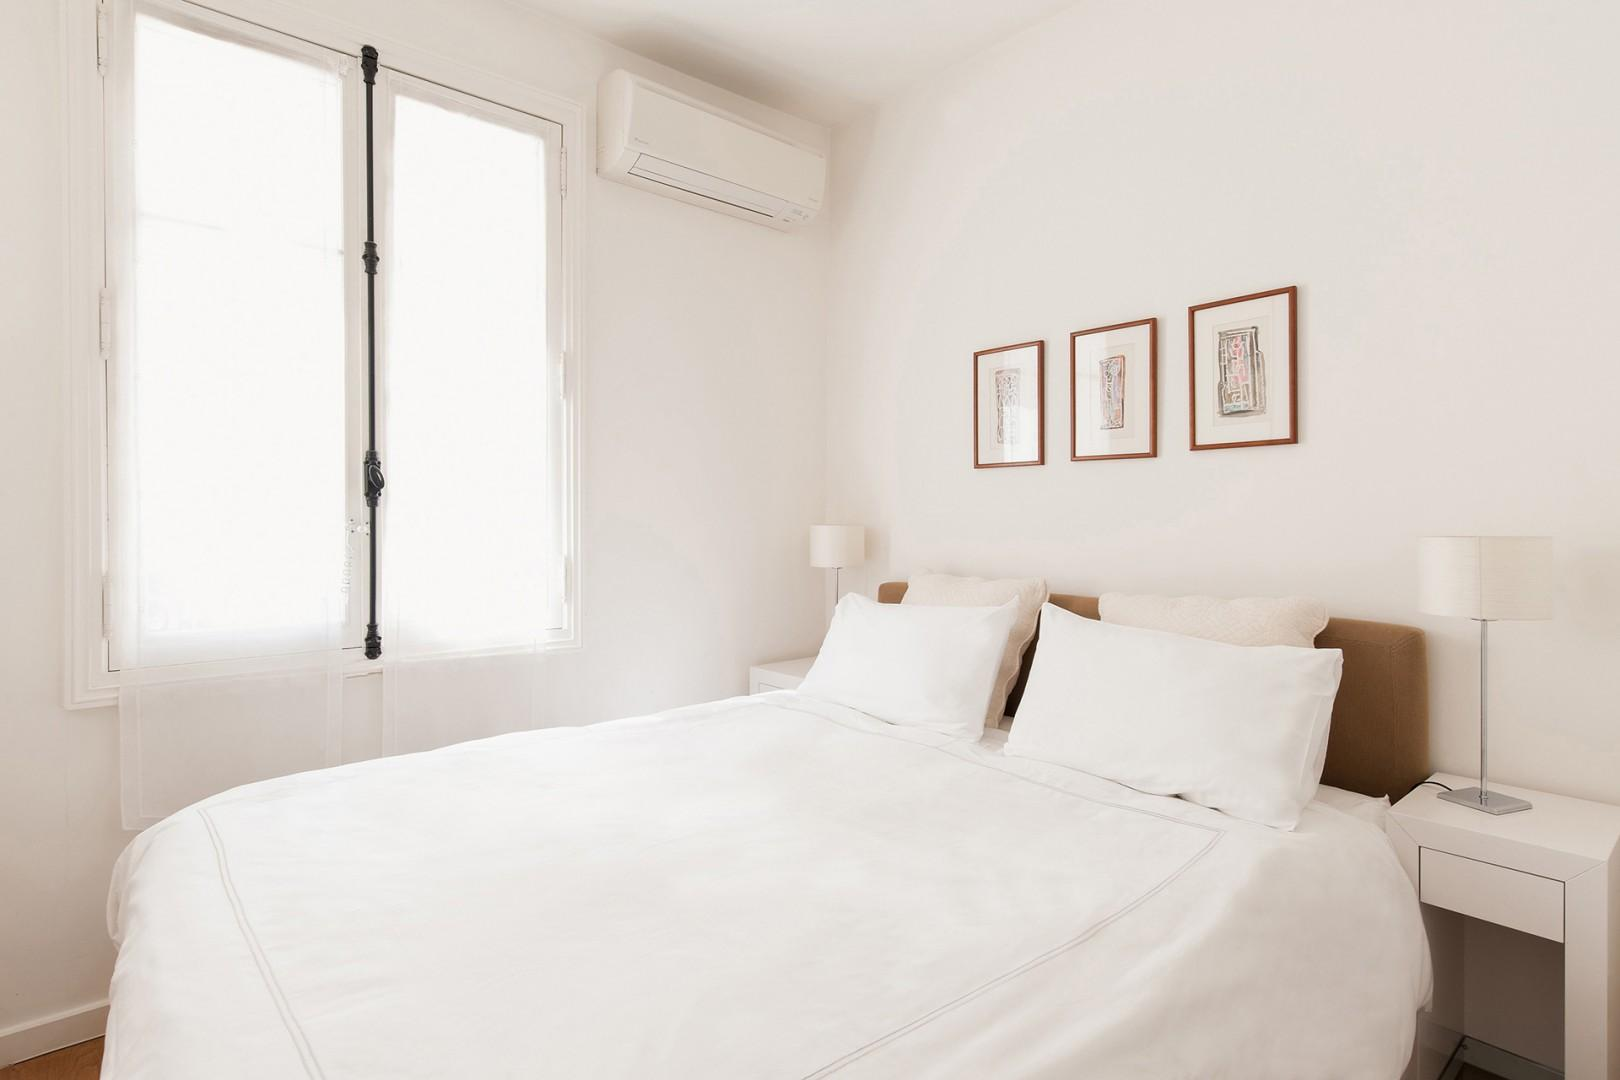 CMS-12-(Make yourself at home in the comfy bedroom with an en suite bathroom.)-10-palette-bedroom-1